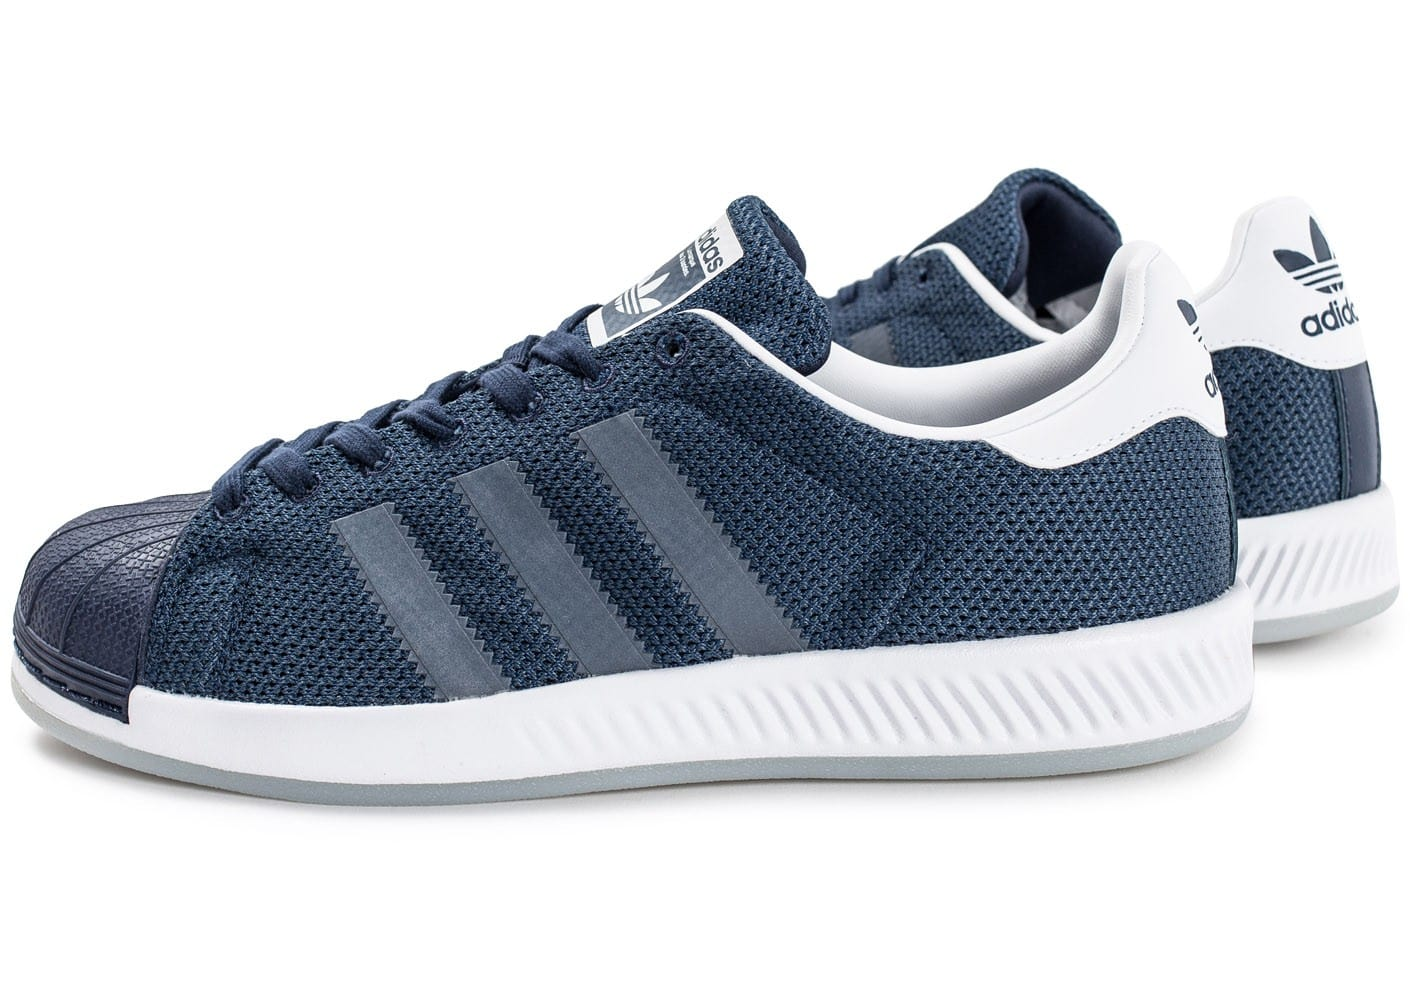 adidas superstar bounce bleu marine chaussures homme chausport. Black Bedroom Furniture Sets. Home Design Ideas